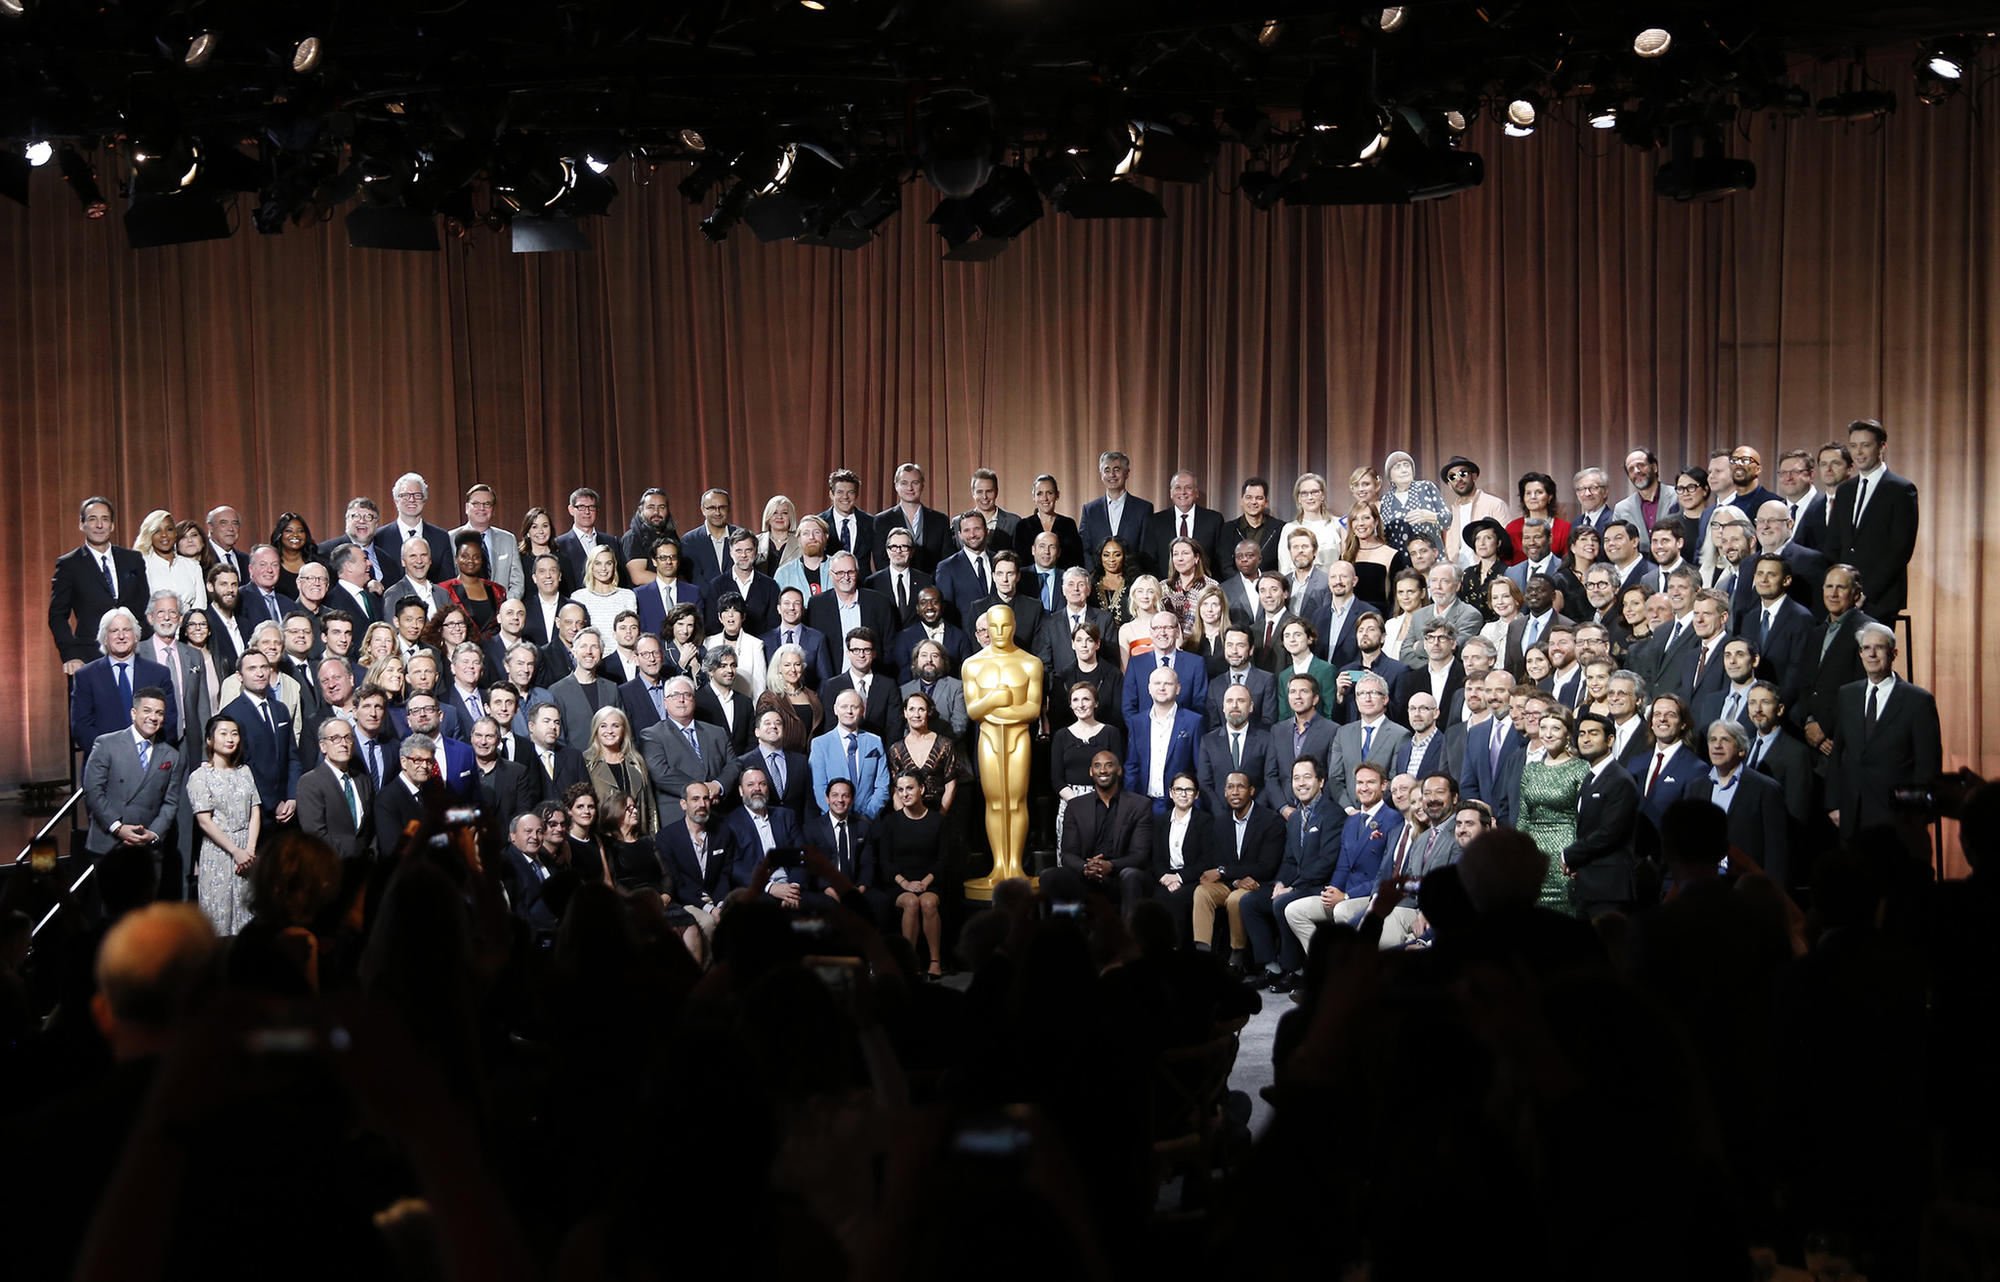 For Oscar nominees, it's time to dine